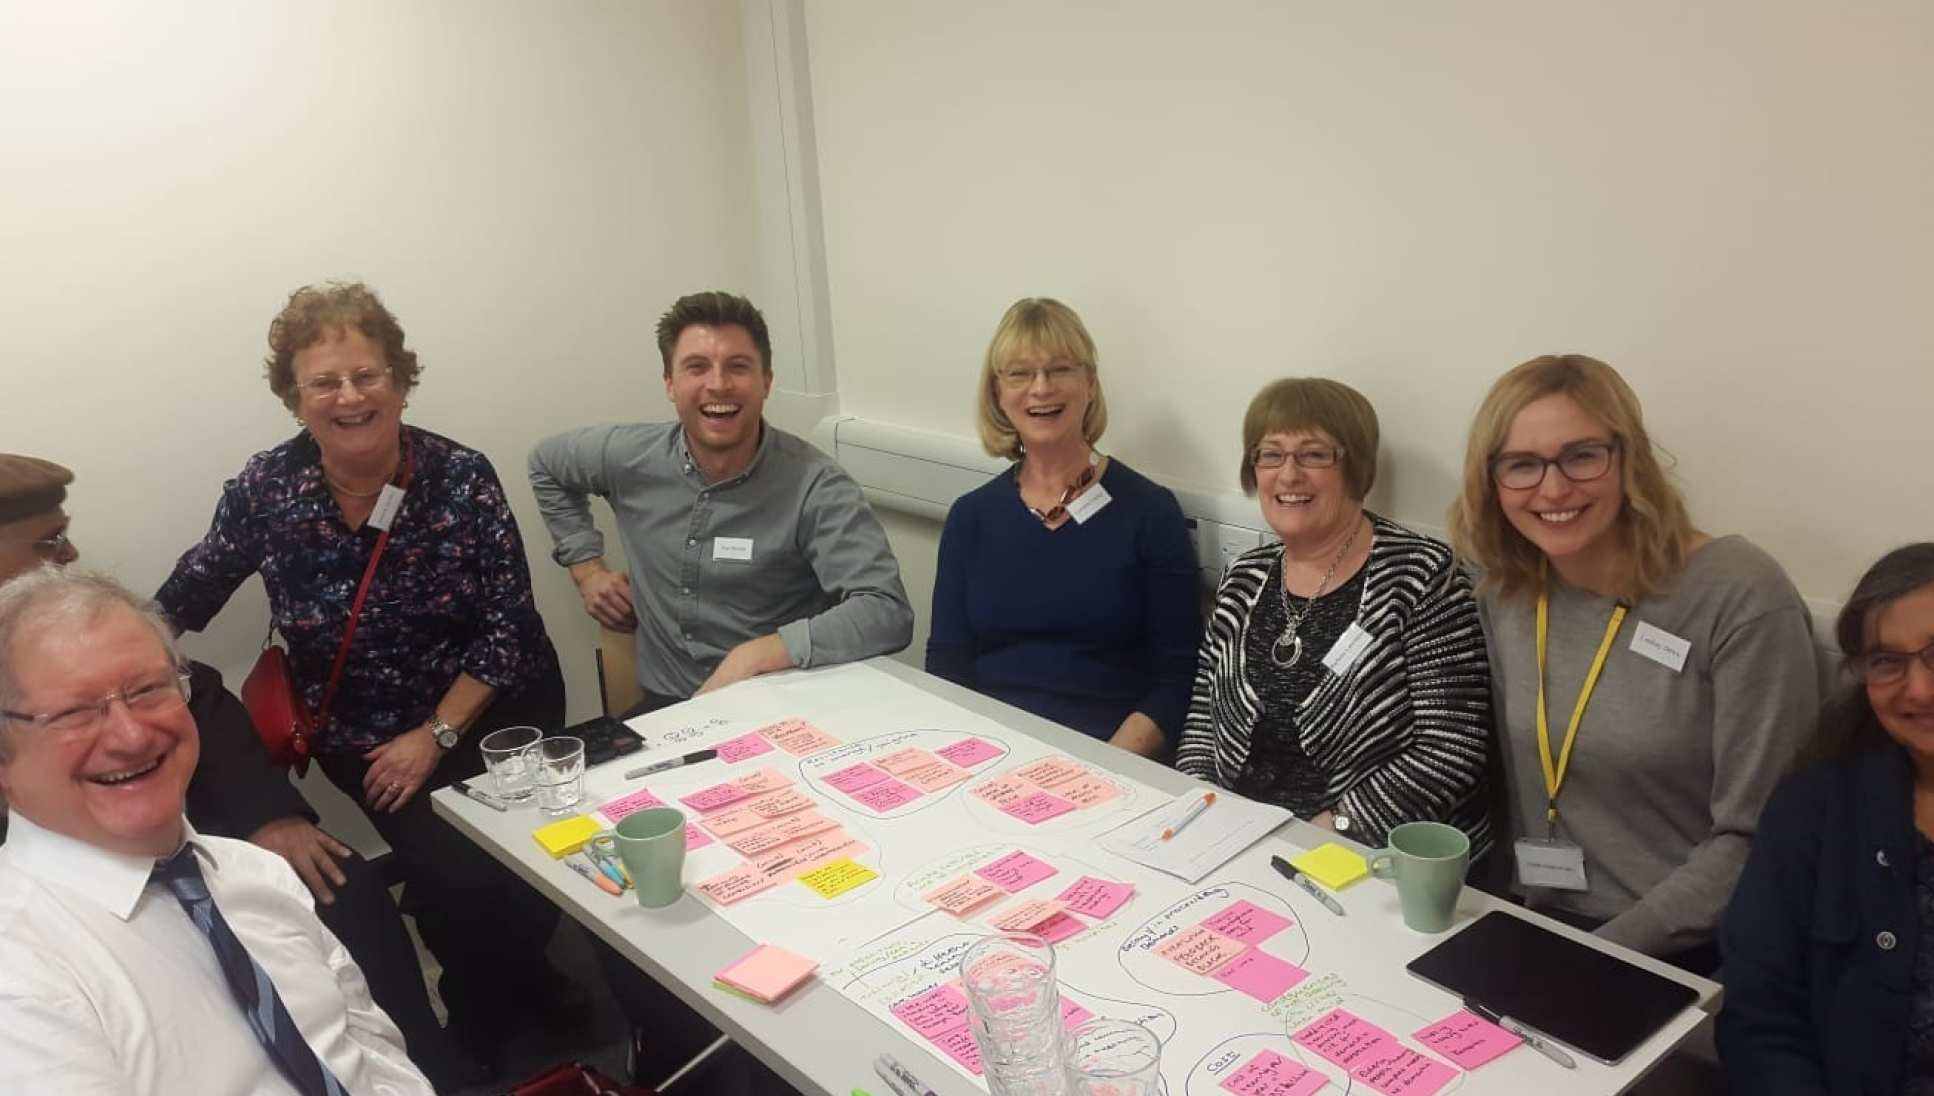 A photograph of members of the workshop sitting around a table with post it notes